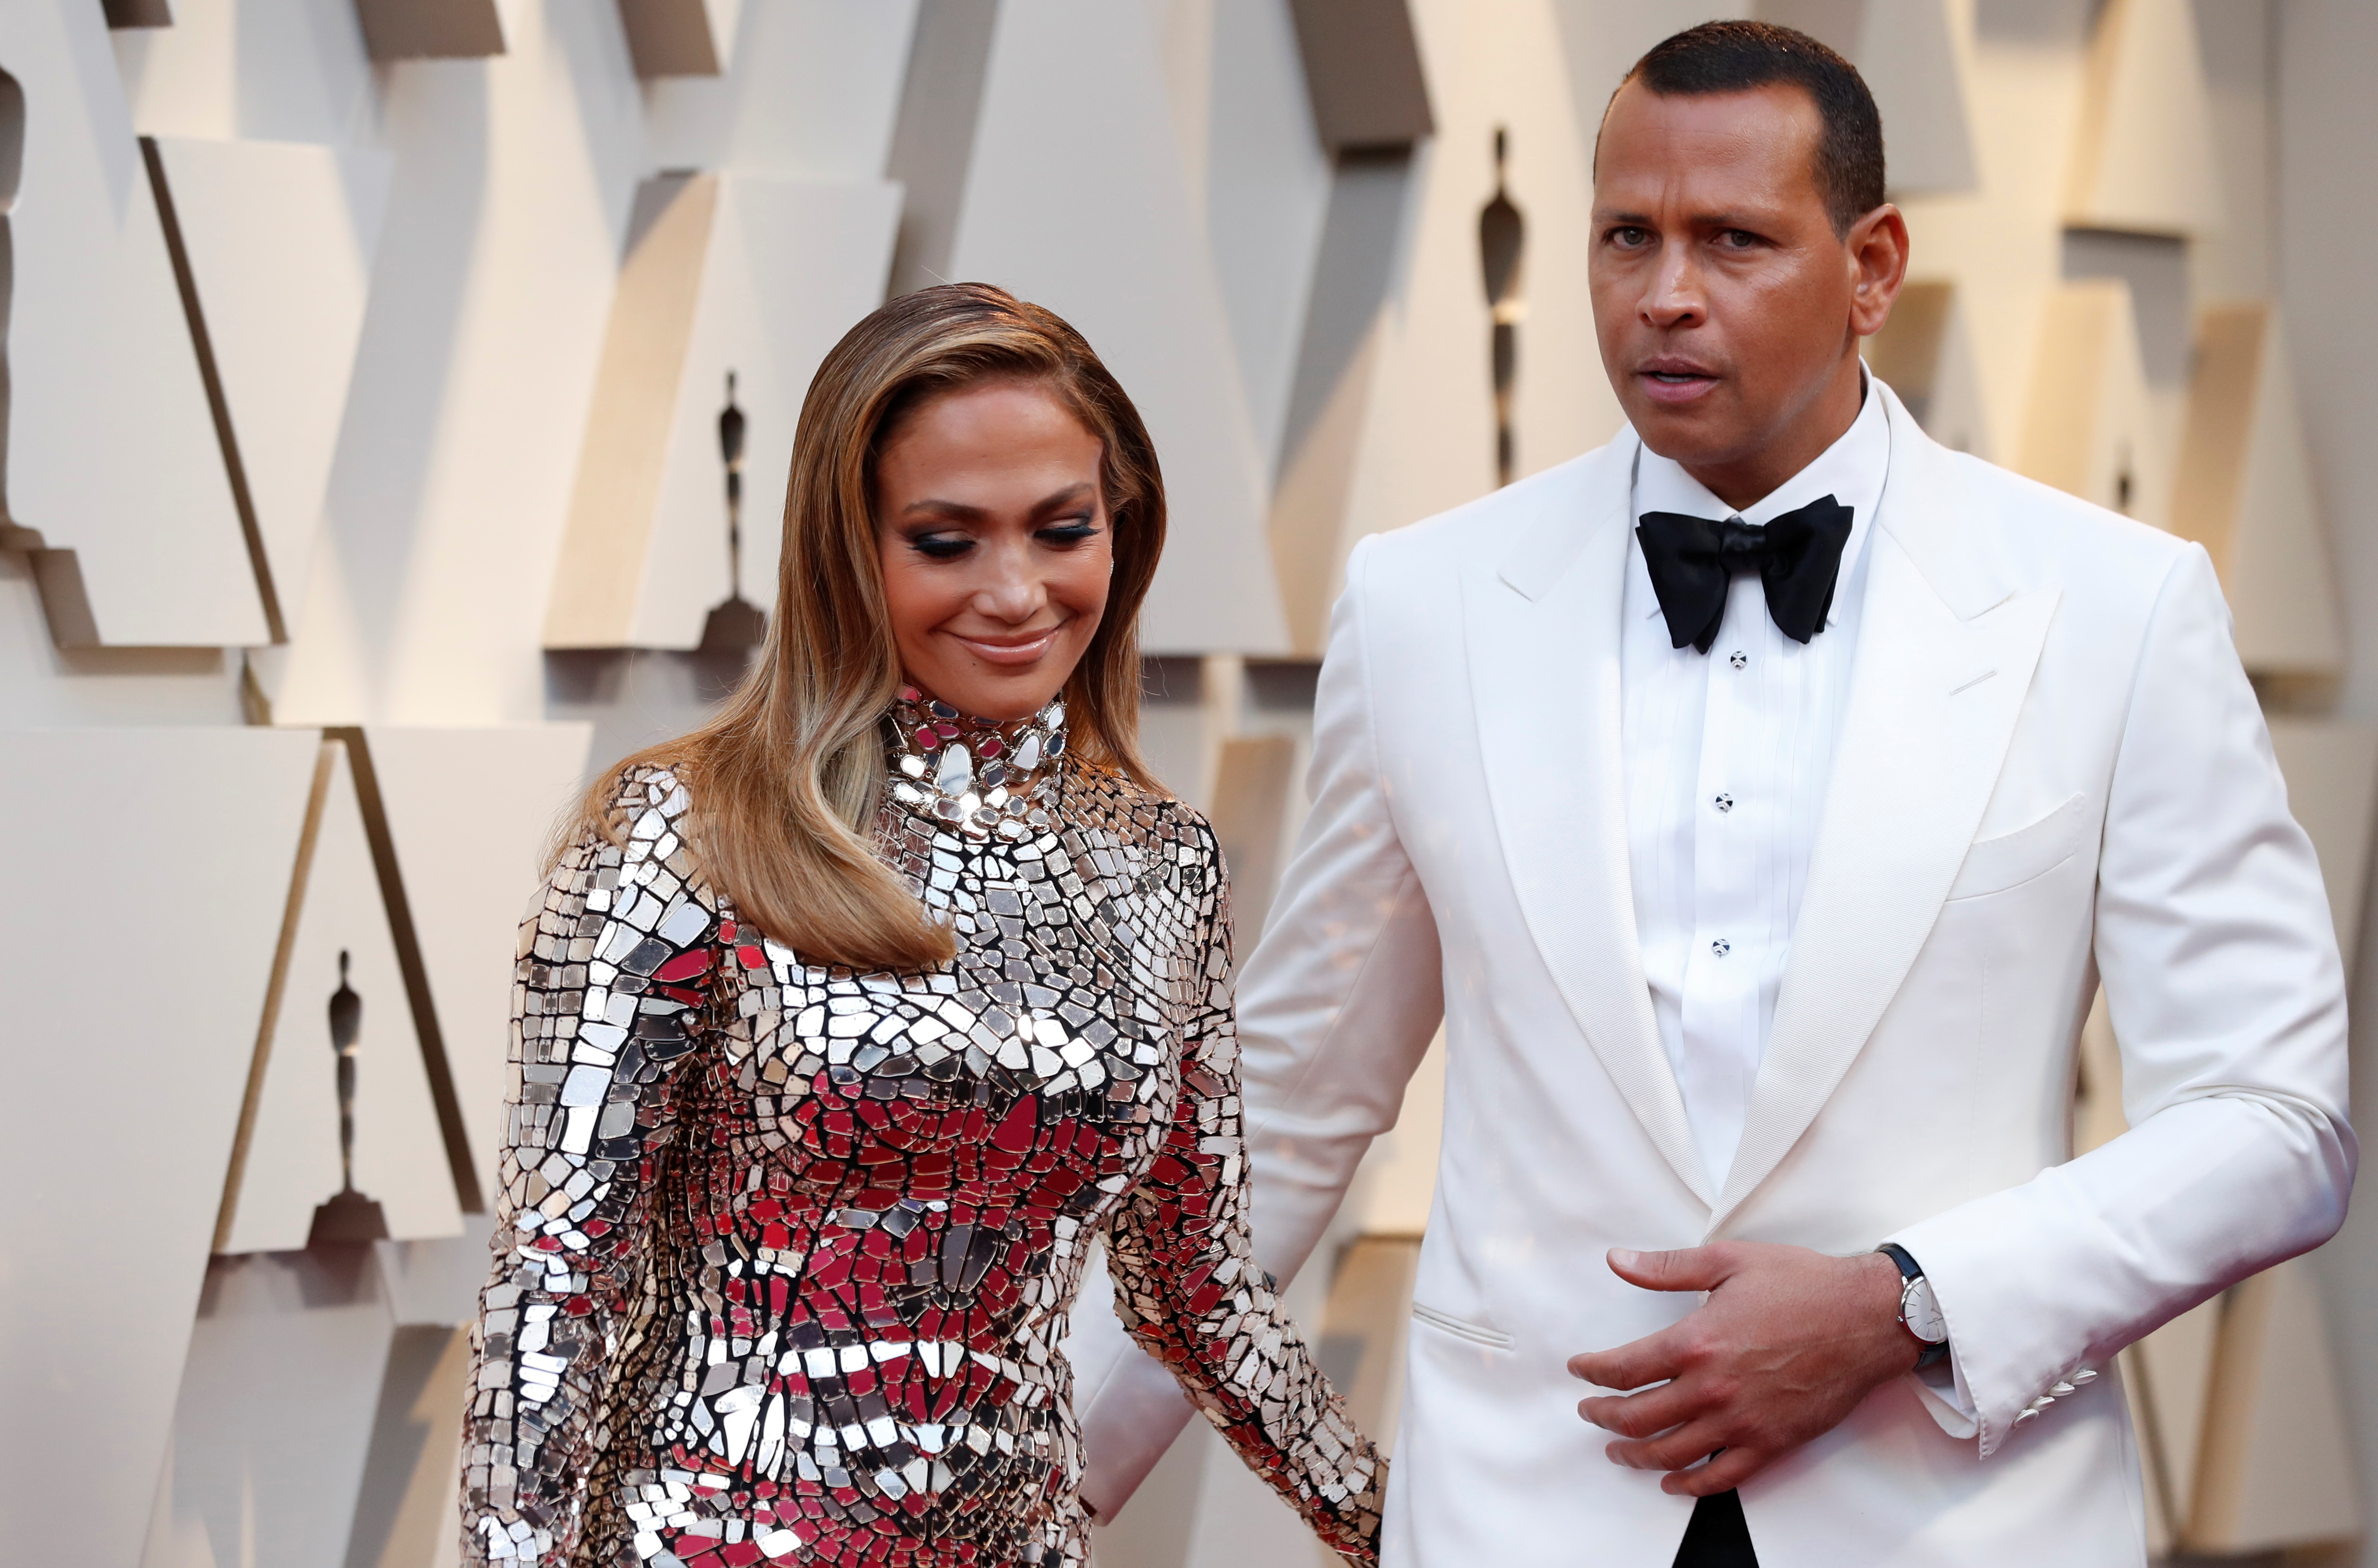 91st Academy Awards - Oscars Arrivals - Red Carpet - Hollywood, Los Angeles, California, U.S., February 24, 2019. Jennifer Lopez, wearing Tom Ford, and Alex Rodriguez. REUTERS/Mario Anzuoni